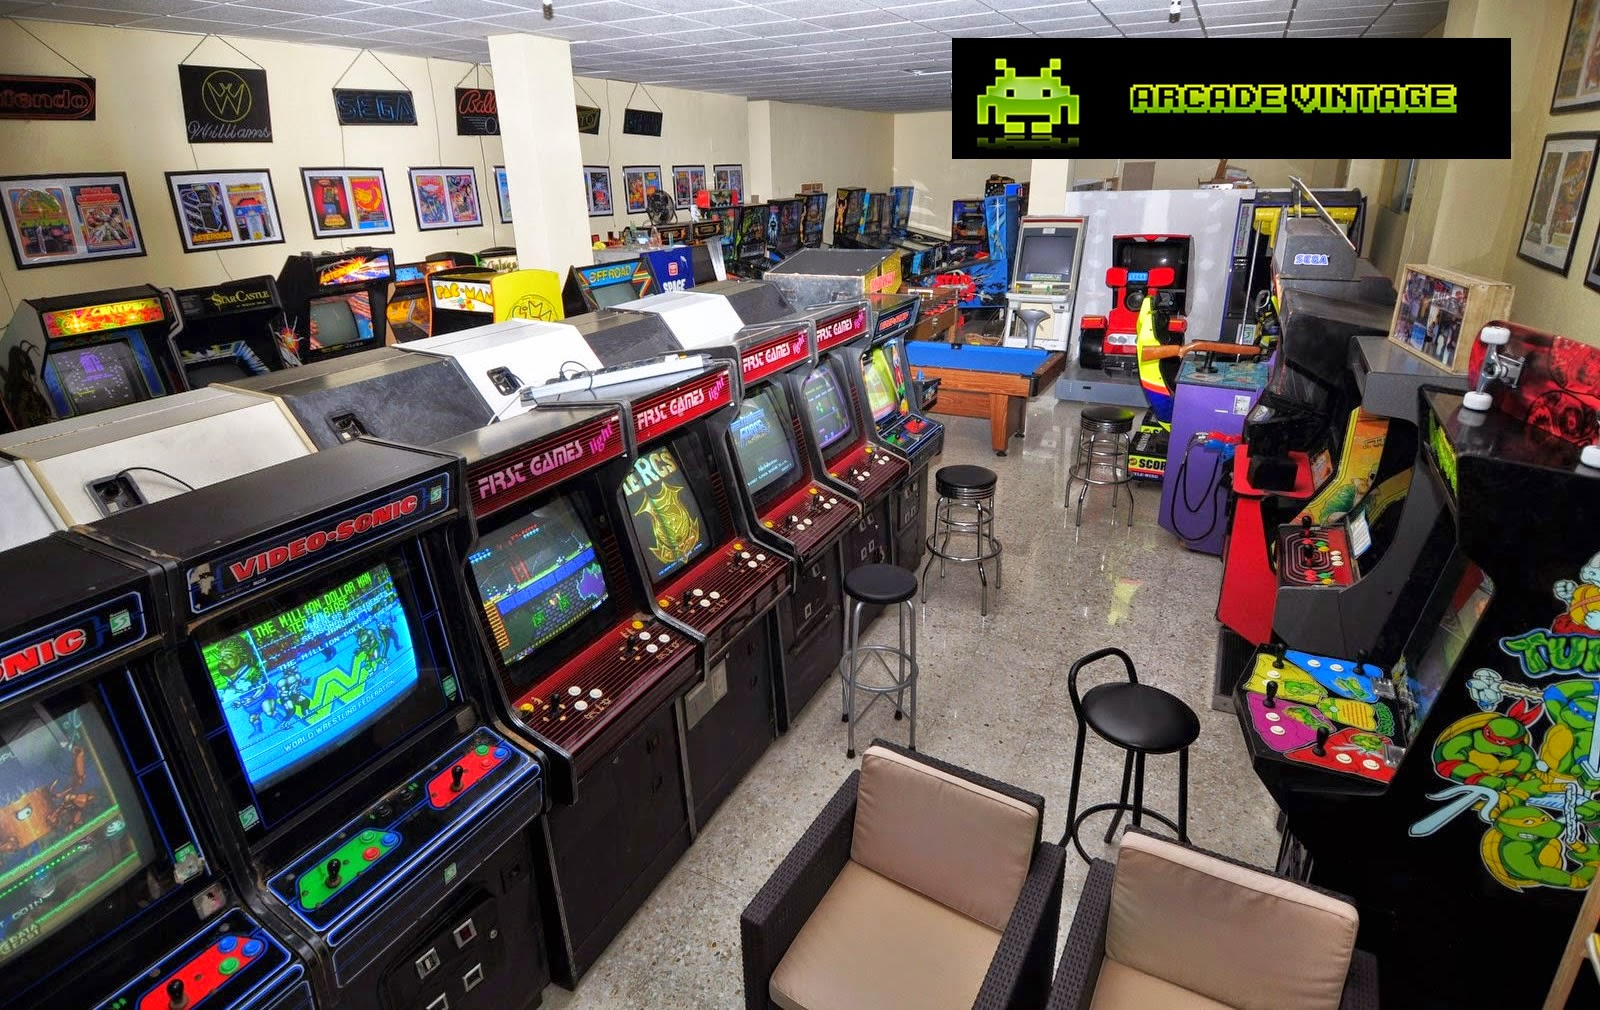 Documental Arcade Vintage